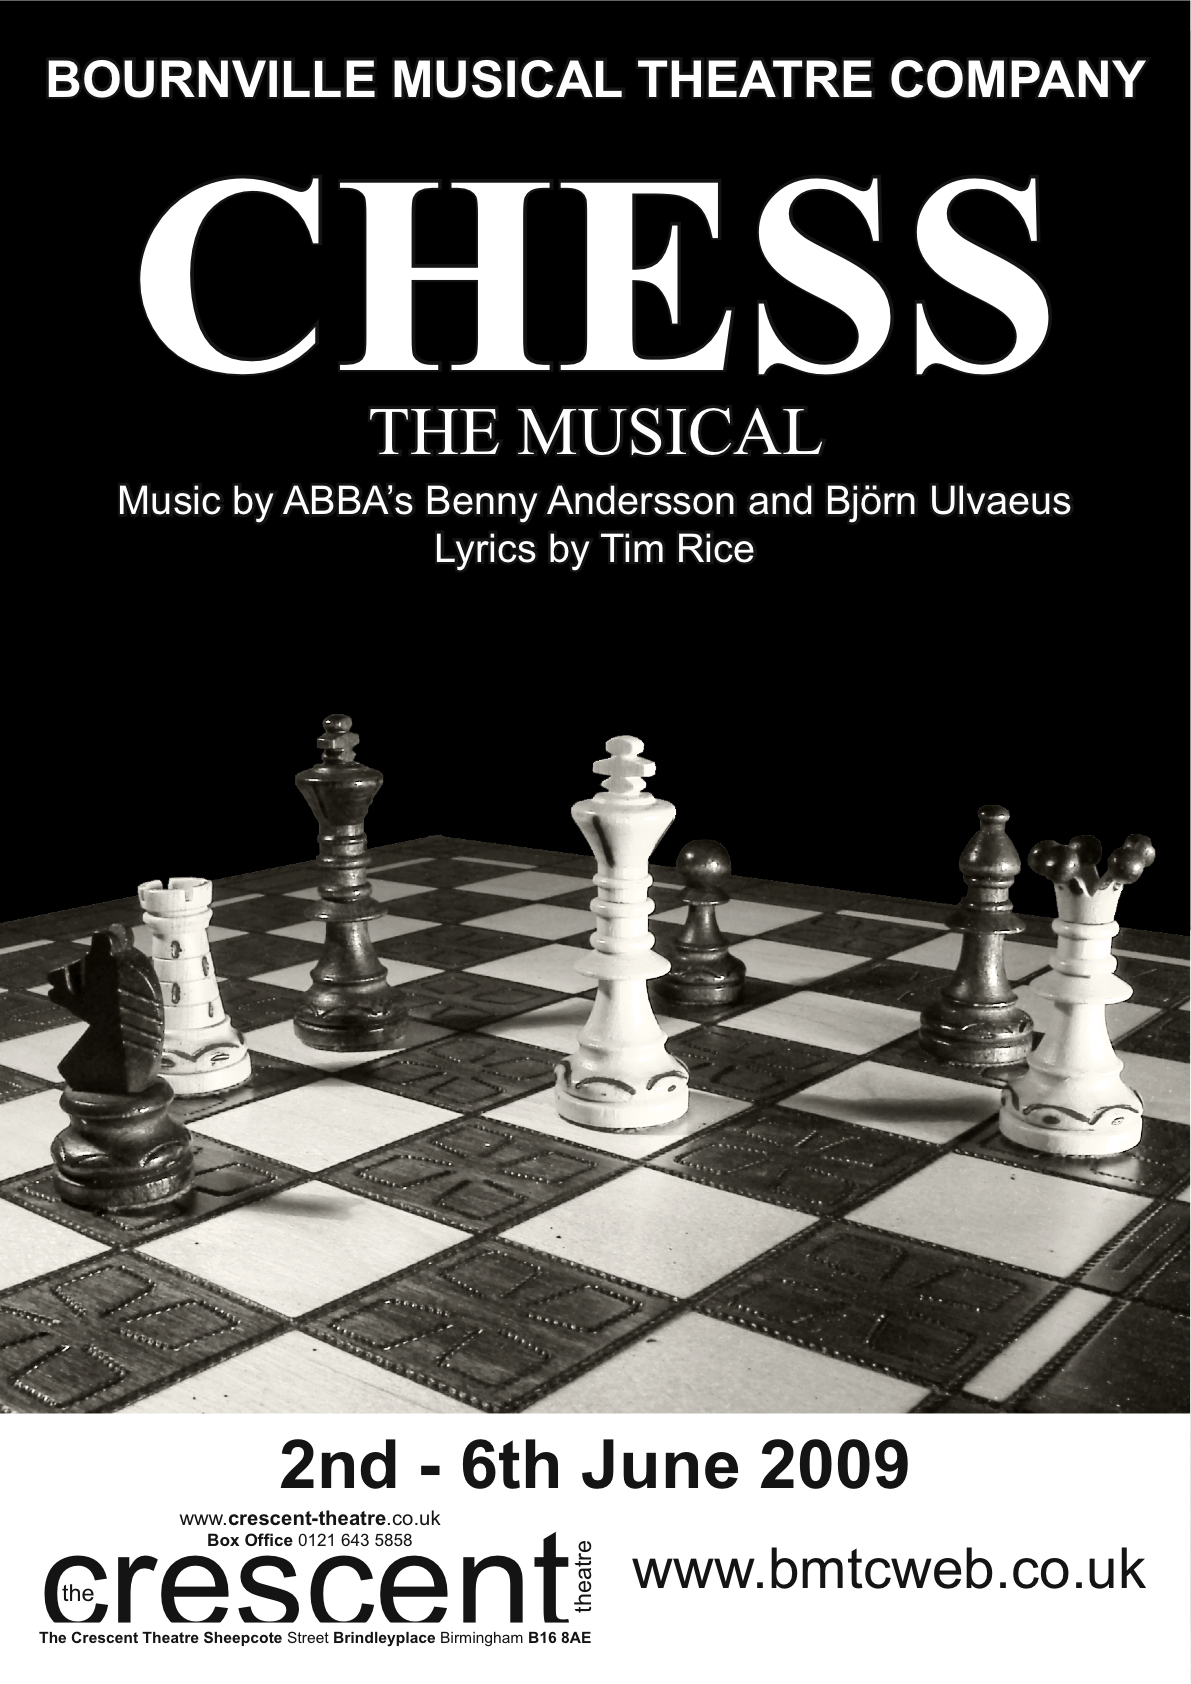 Child Wallpaper Hd Chess The Musical